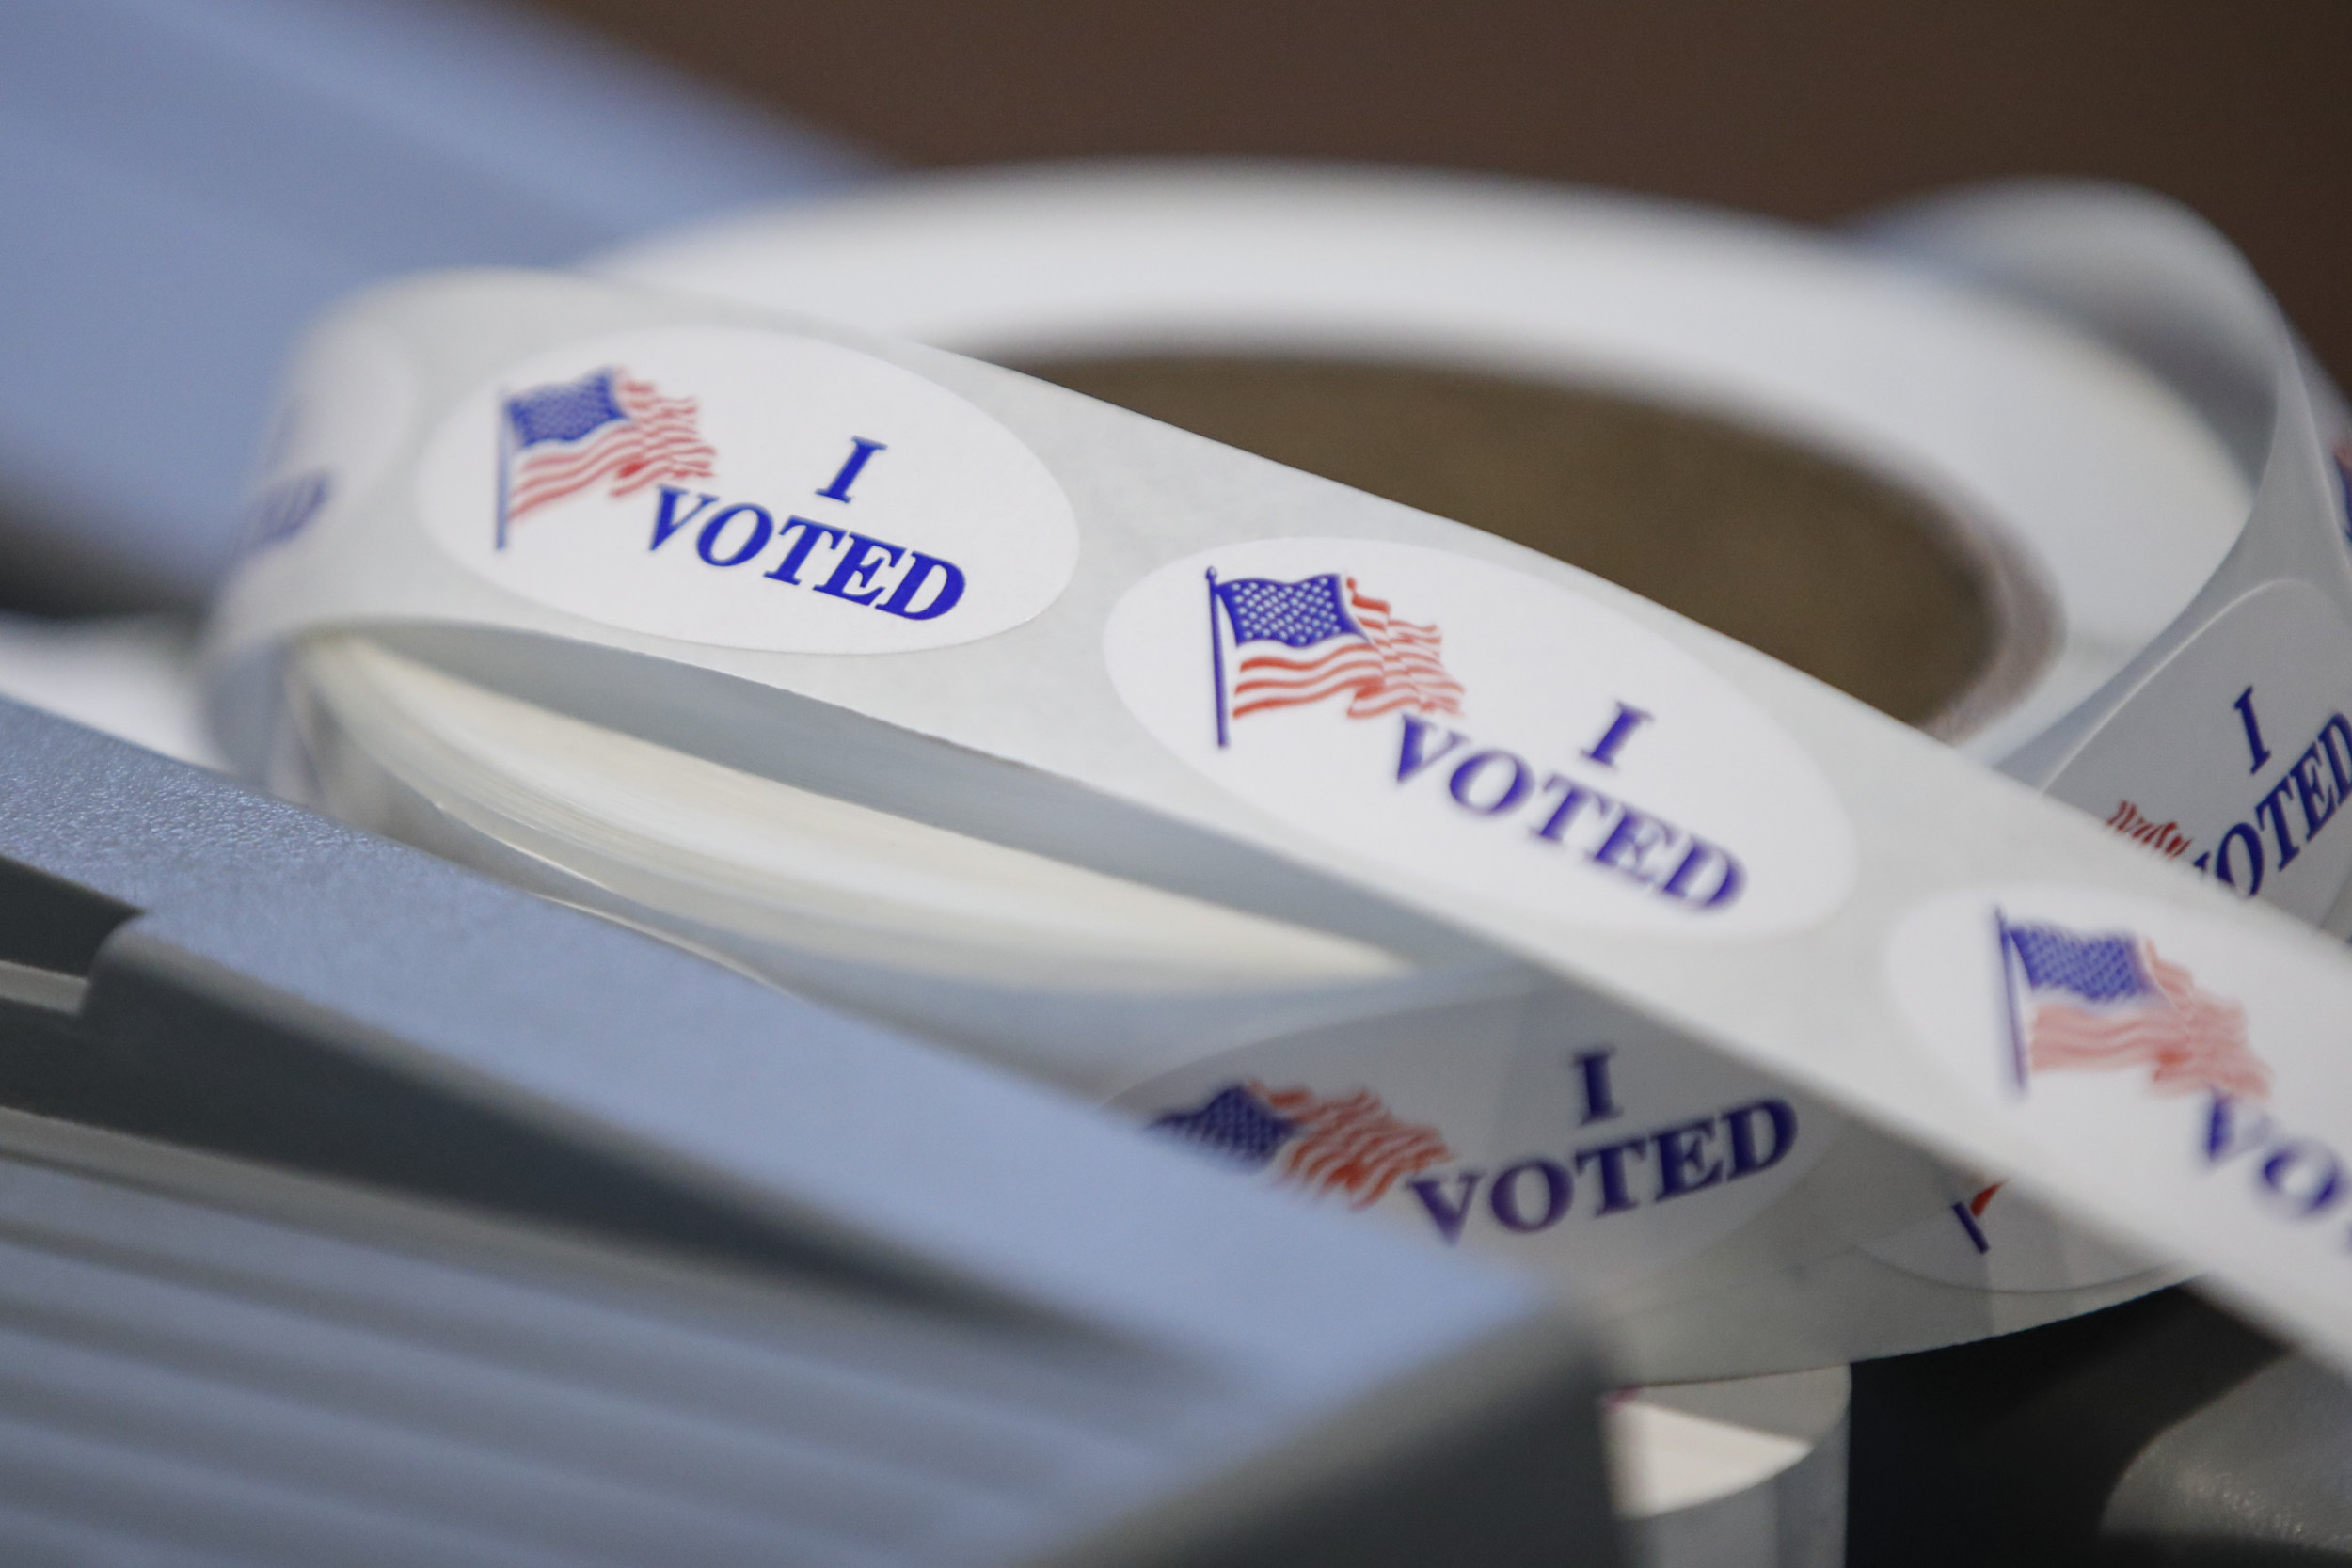 We are Republicans and Democrats. Vote by mail is essential to protect voters—and democracy itself | Opinion